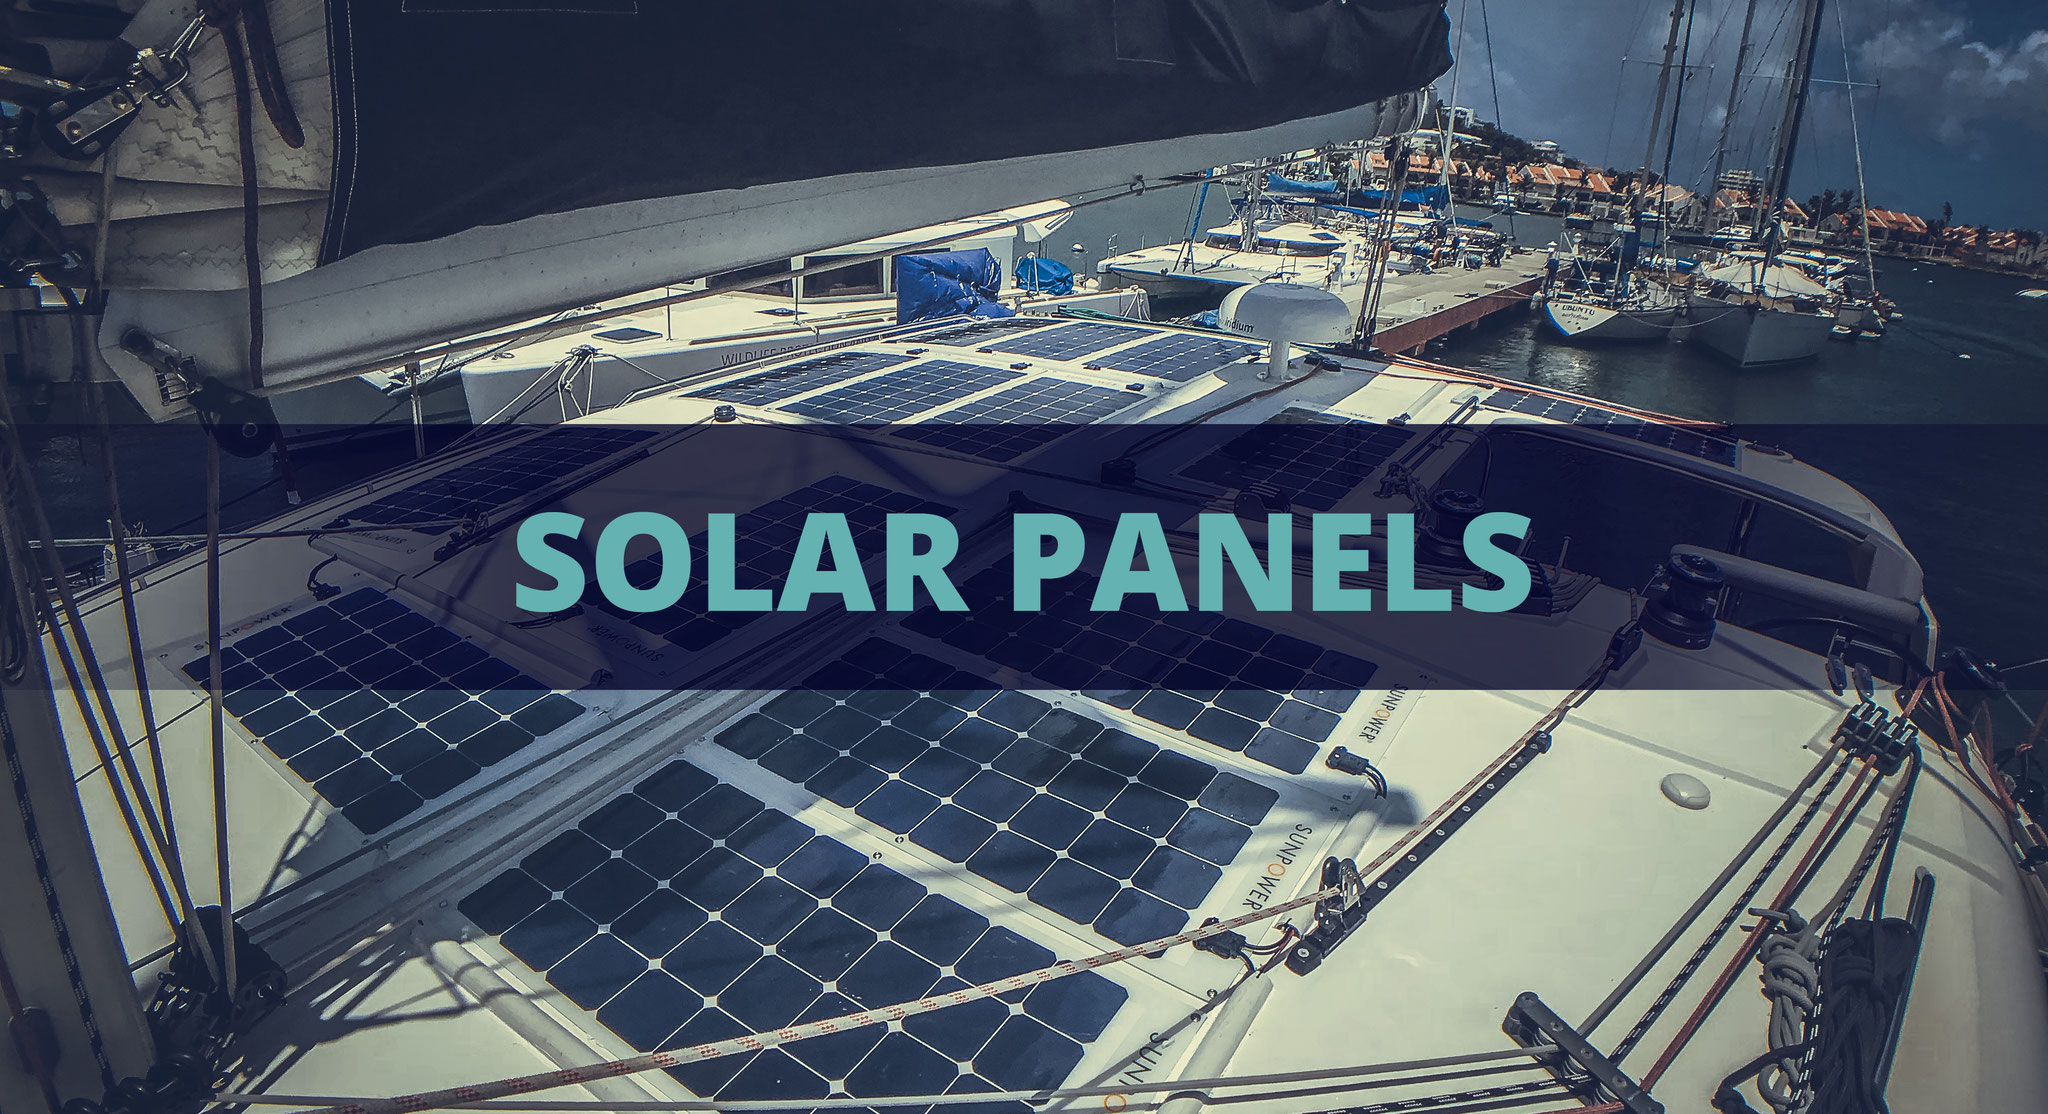 Take advantage of free energy. Offset the need to operate your engine or generator to charge your batteries by adding solar panels. We professionally install the perfect solar setup using only the most efficient solar panels and solar controllers.